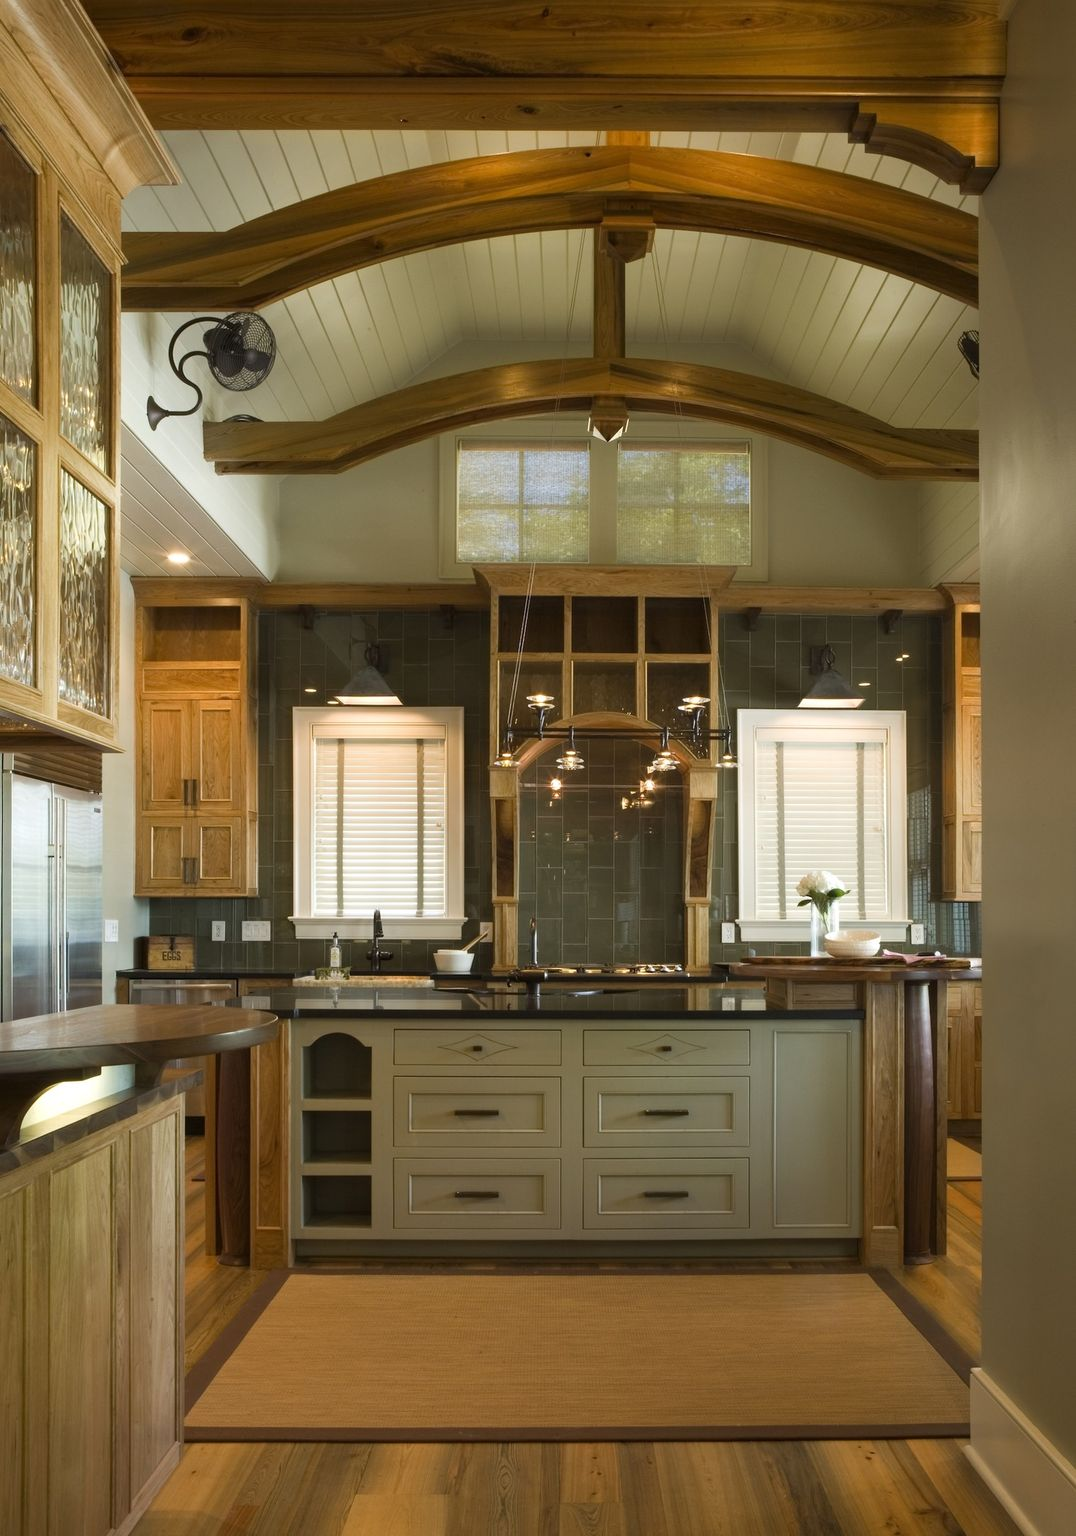 Beach Cottage With Style Herlong Architects Architecture Interior Design